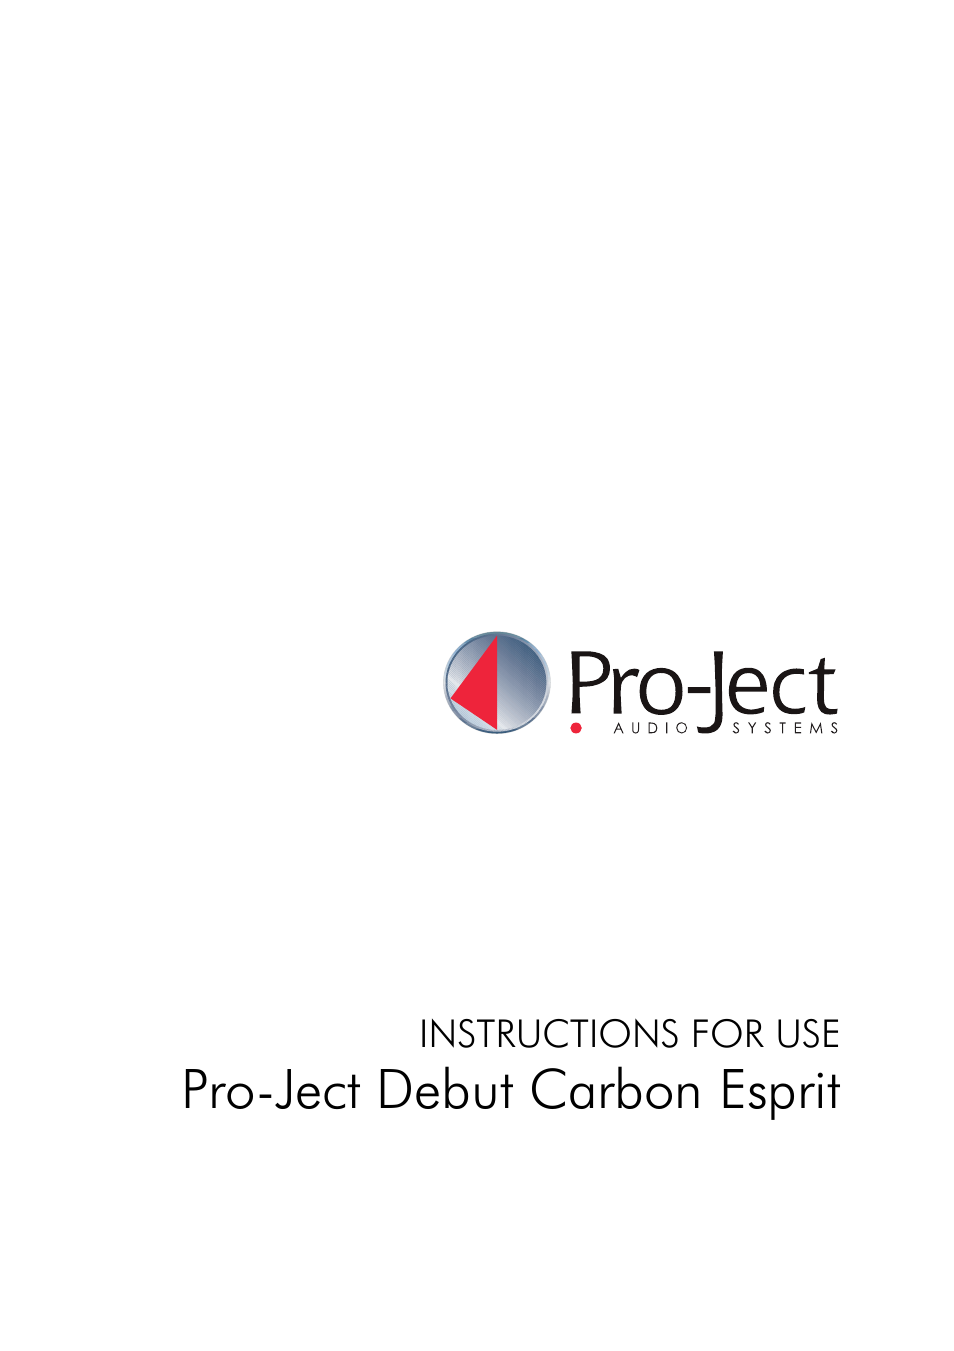 Pro-Ject Audio Systems Pro-Ject Debut Carbon Esprit (DC) User Manual | 8  pages